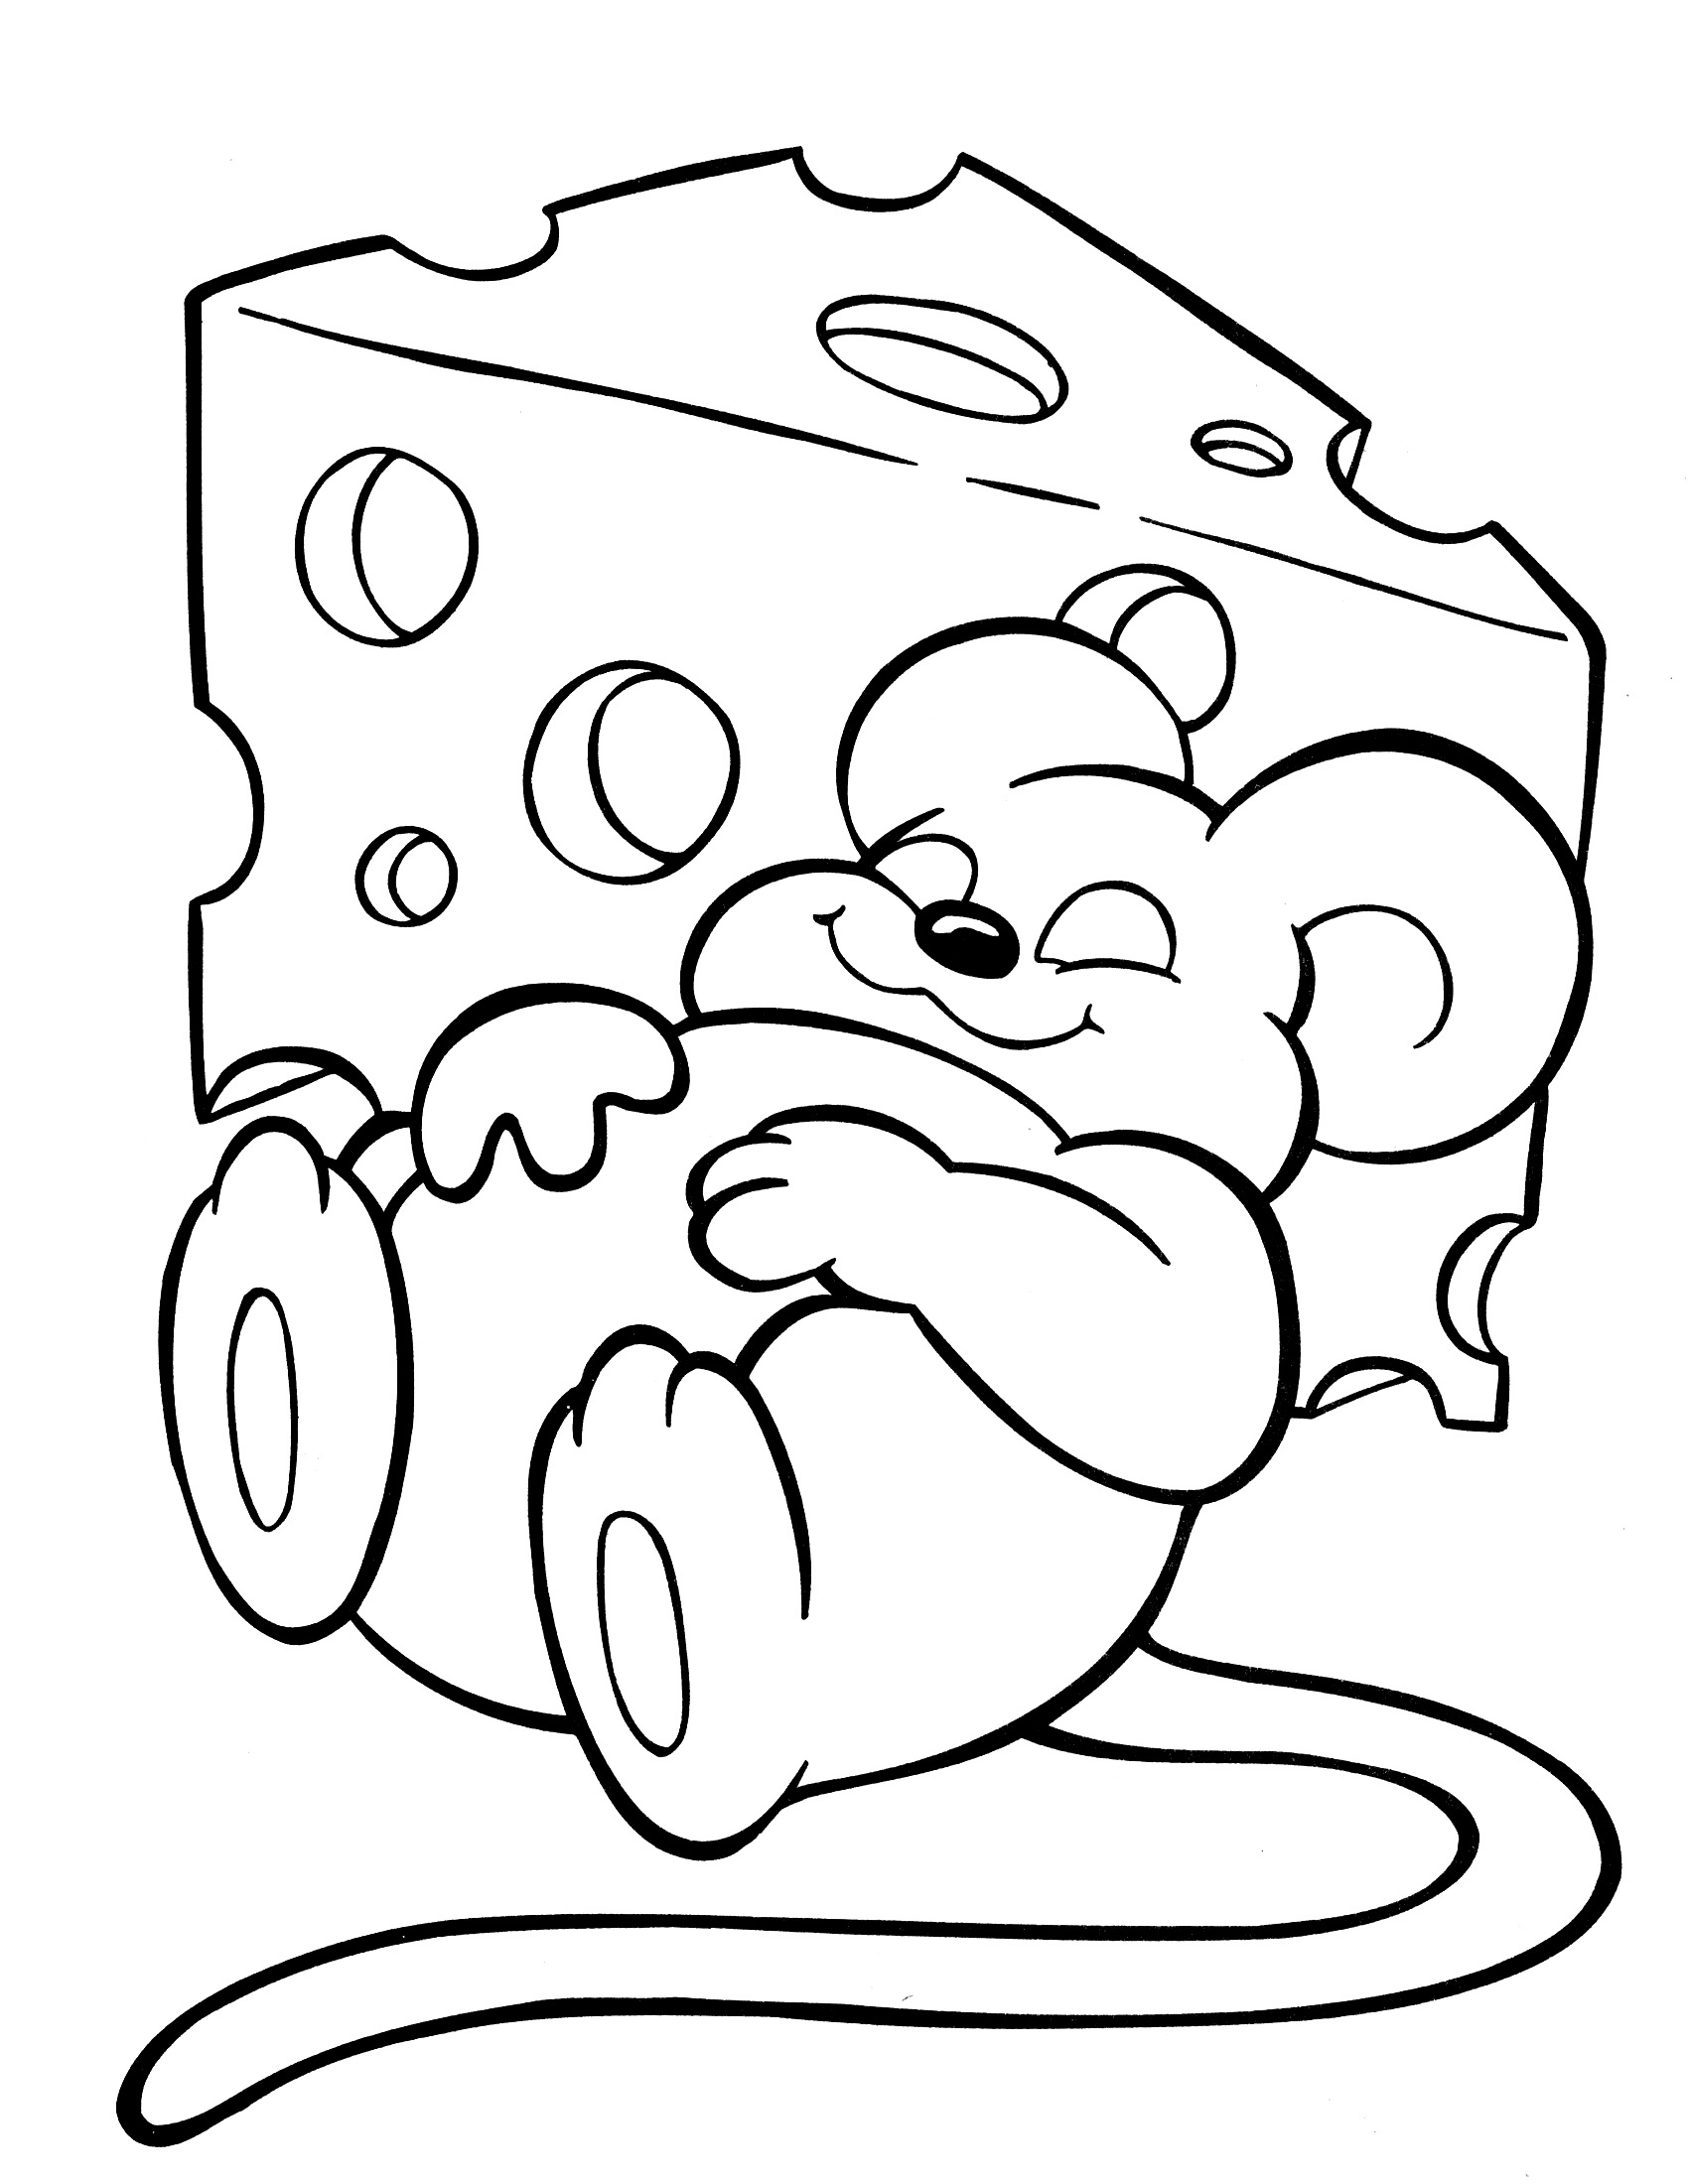 crayola-free-coloring-pages-5